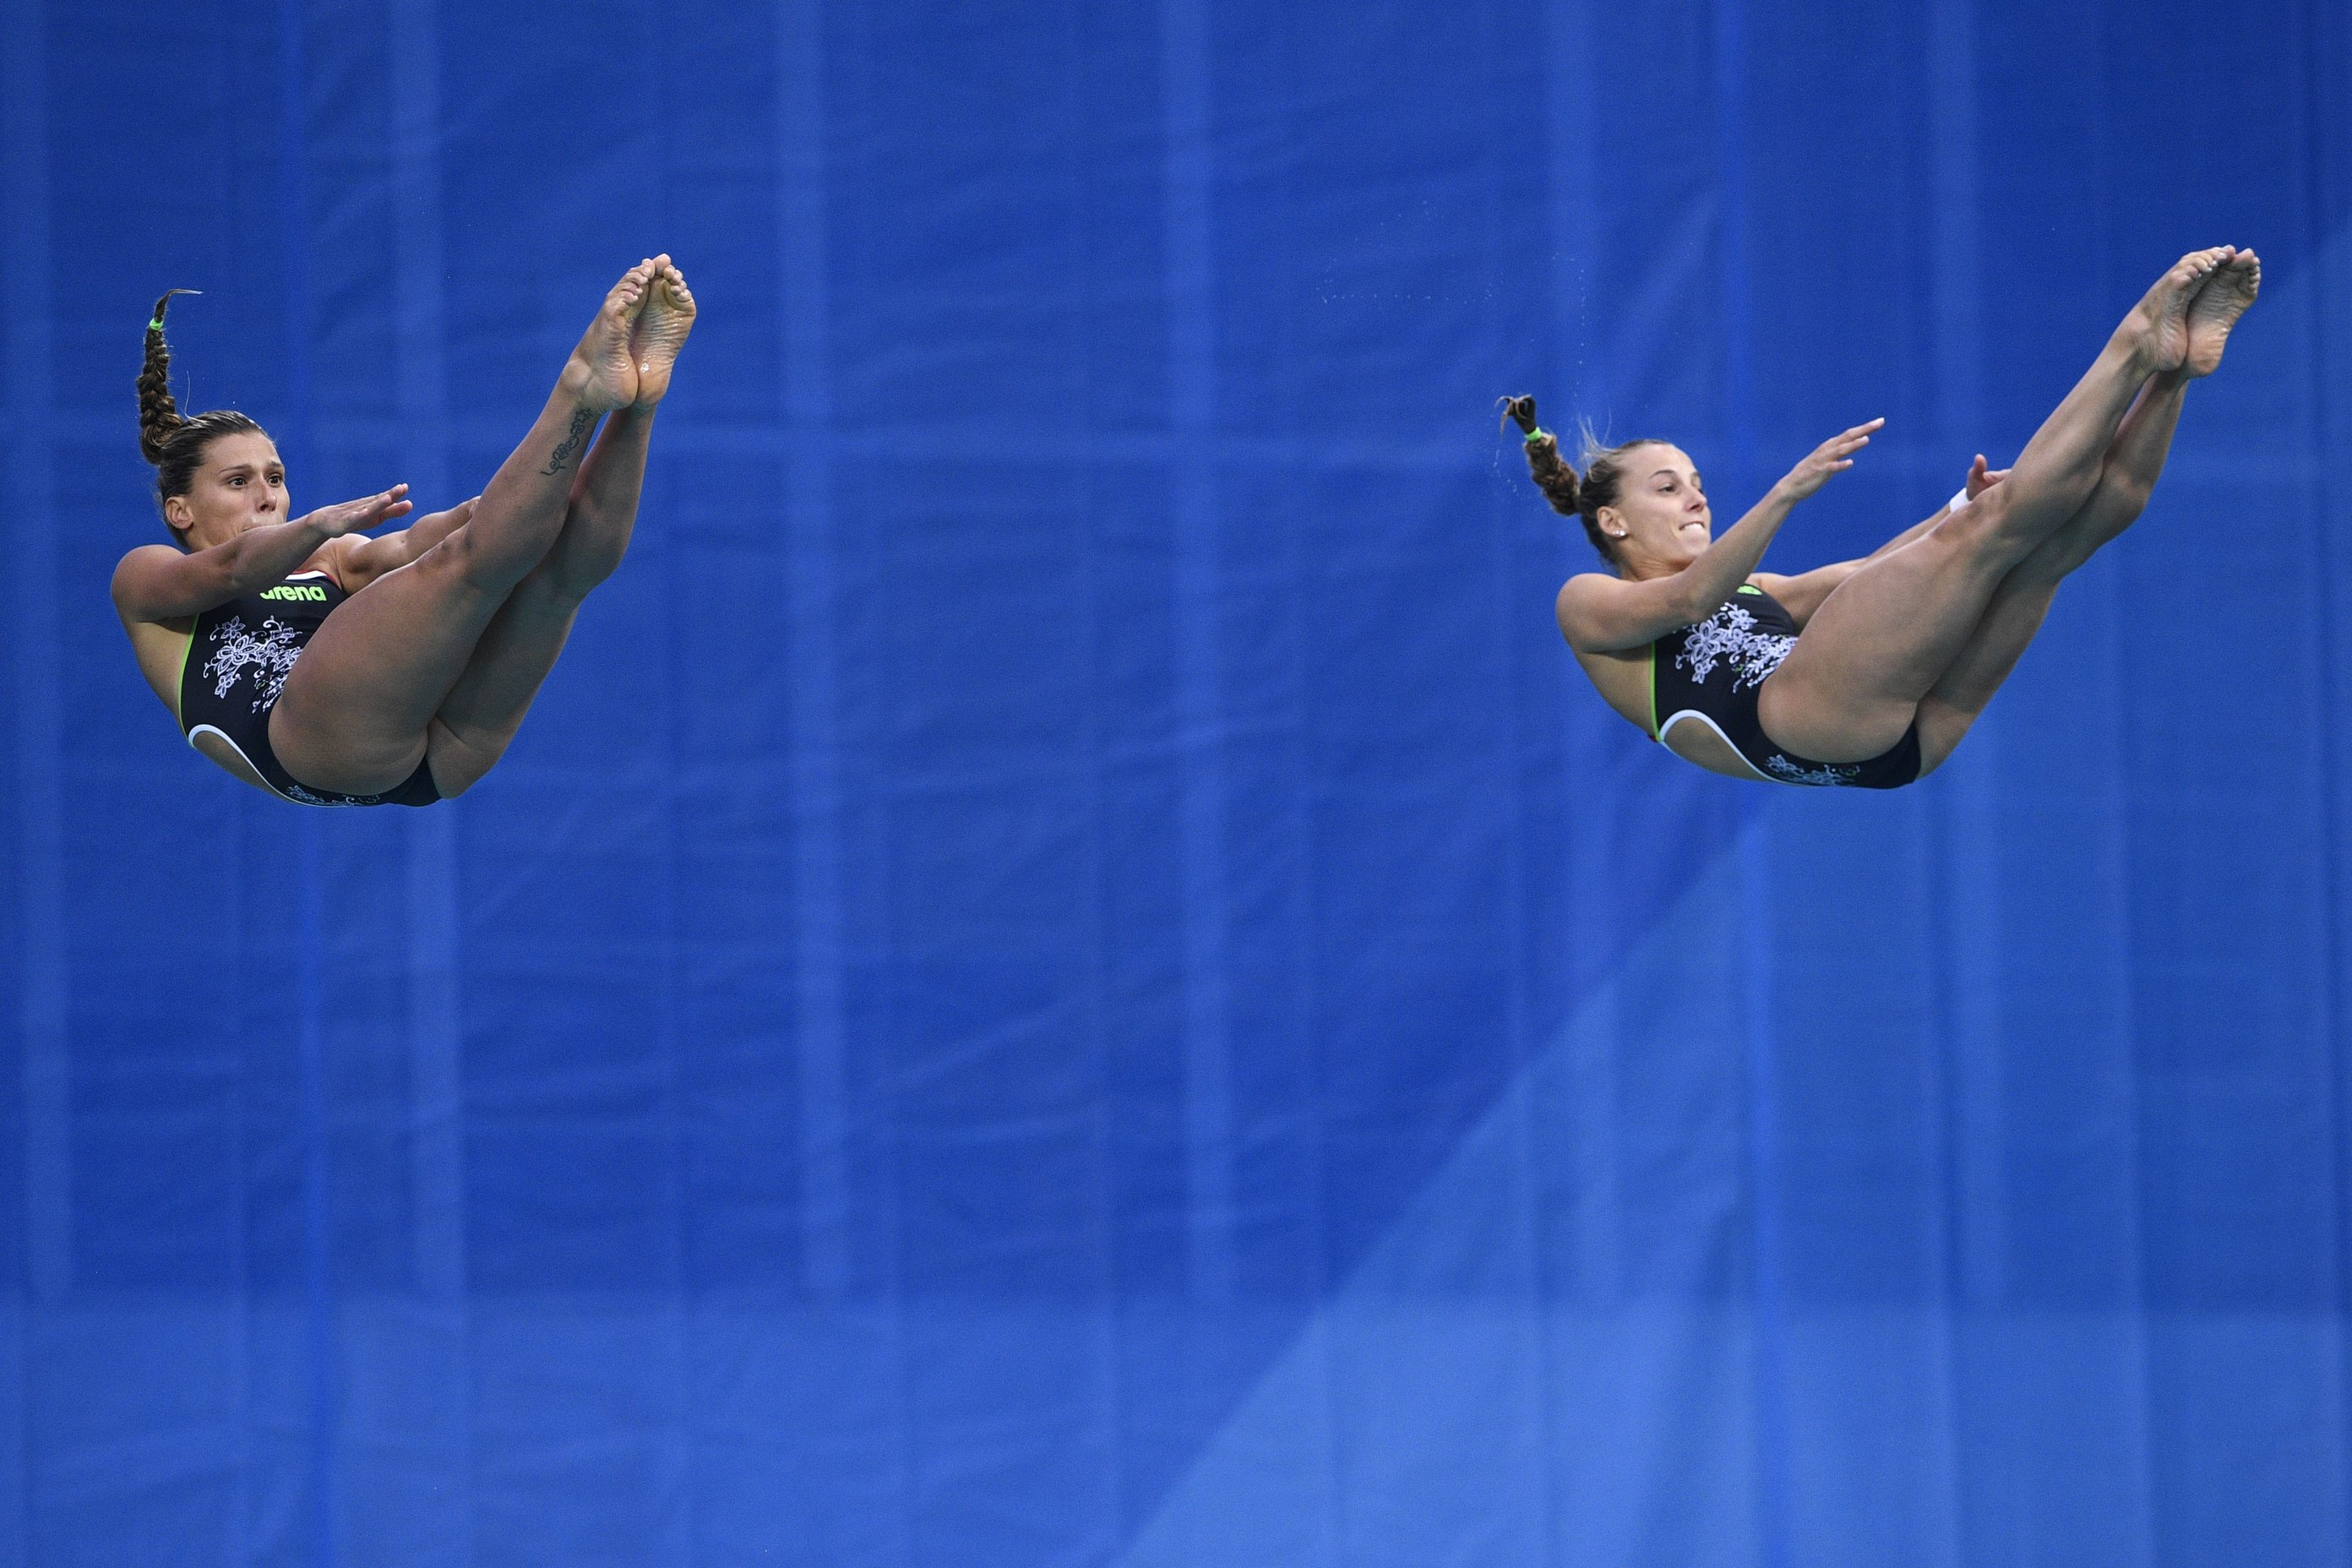 Italy's Tania Cagnotto (R) and Italy's Francesca Dallape compete in the Women's Synchronized 3m Springboard Final during the diving event at the Rio 2016 Olympic Games at the Maria Lenk Aquatics Stadium in Rio de Janeiro on August 7, 2016. Cagnotto and Dallape won the silver medal. / AFP / Martin BUREAU        (Photo credit should read MARTIN BUREAU/AFP/Getty Images)